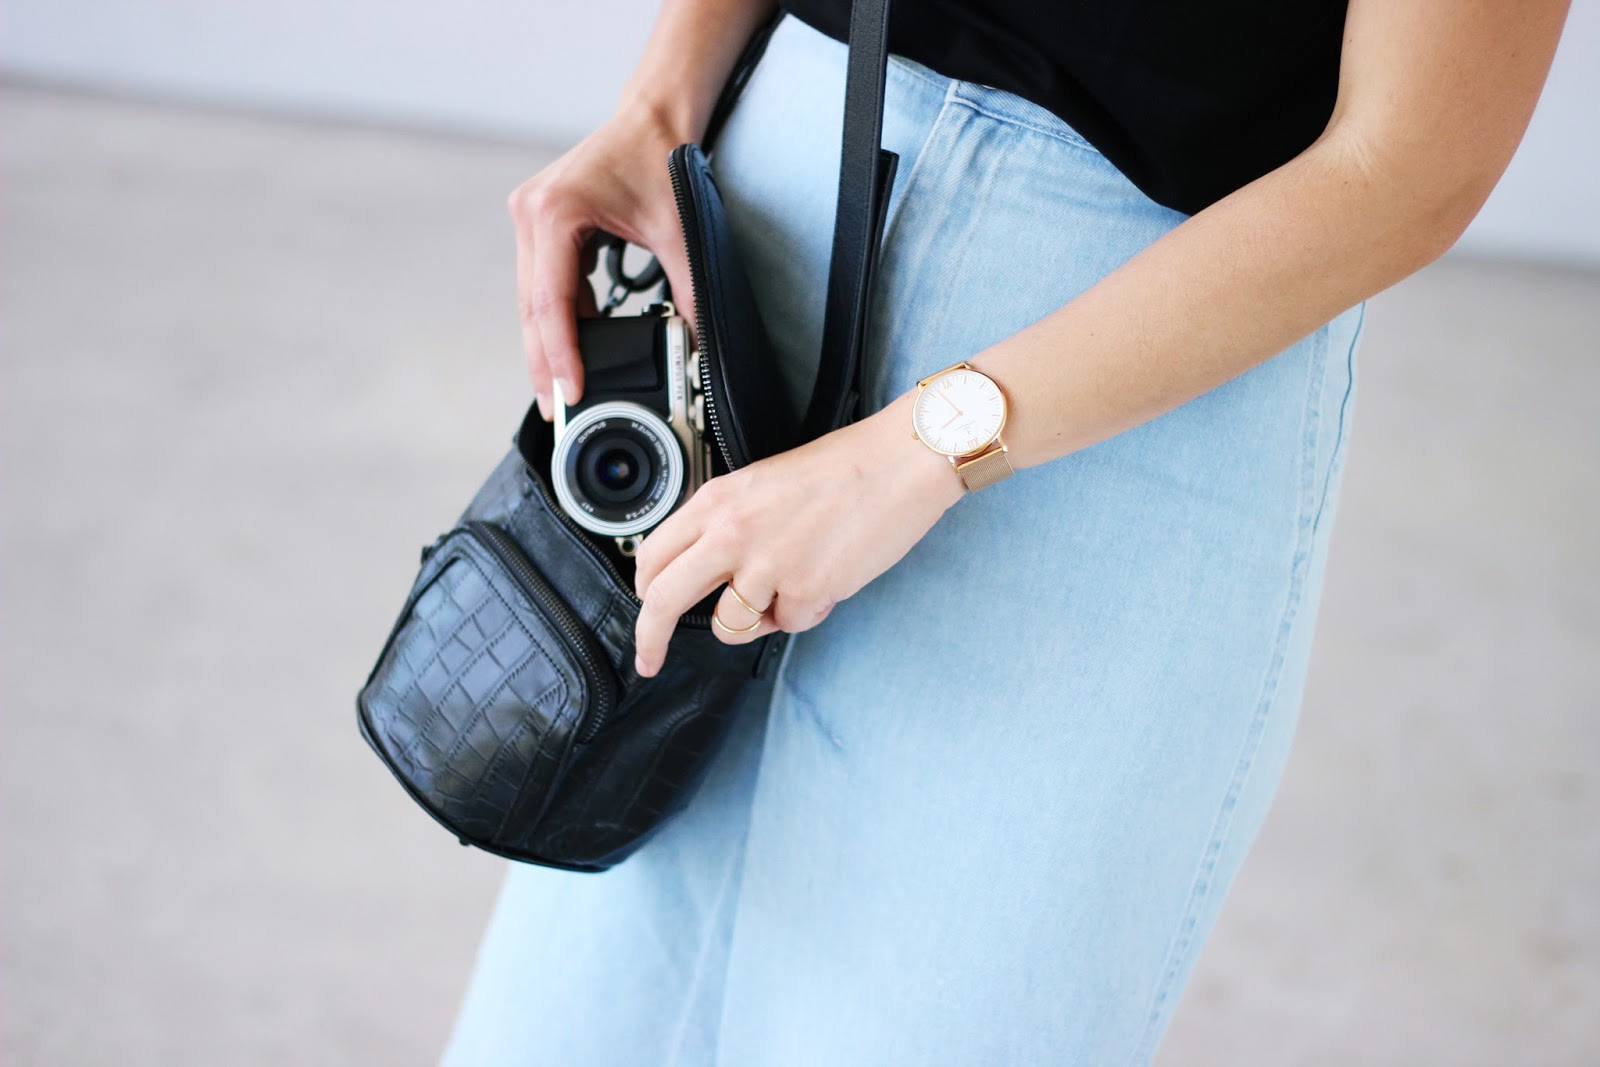 LONG DENIM SKIRT STRAP SANDALS OLYMPUS PEN EPL7